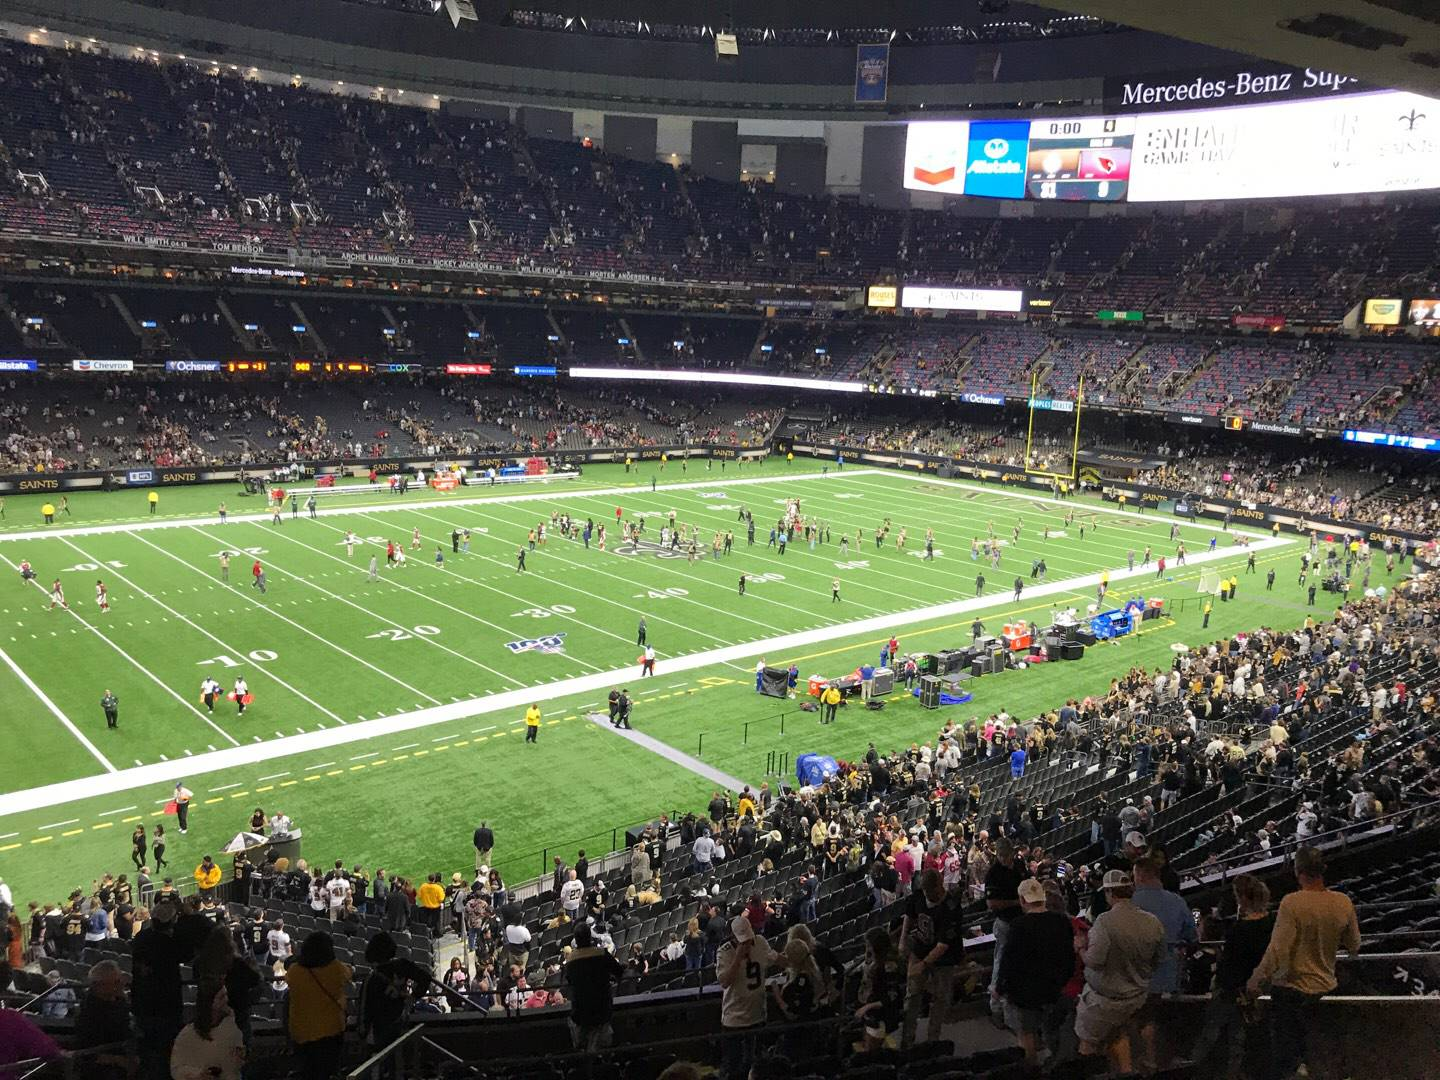 Mercedes-Benz Superdome Section 341 Row 16 Seat 12